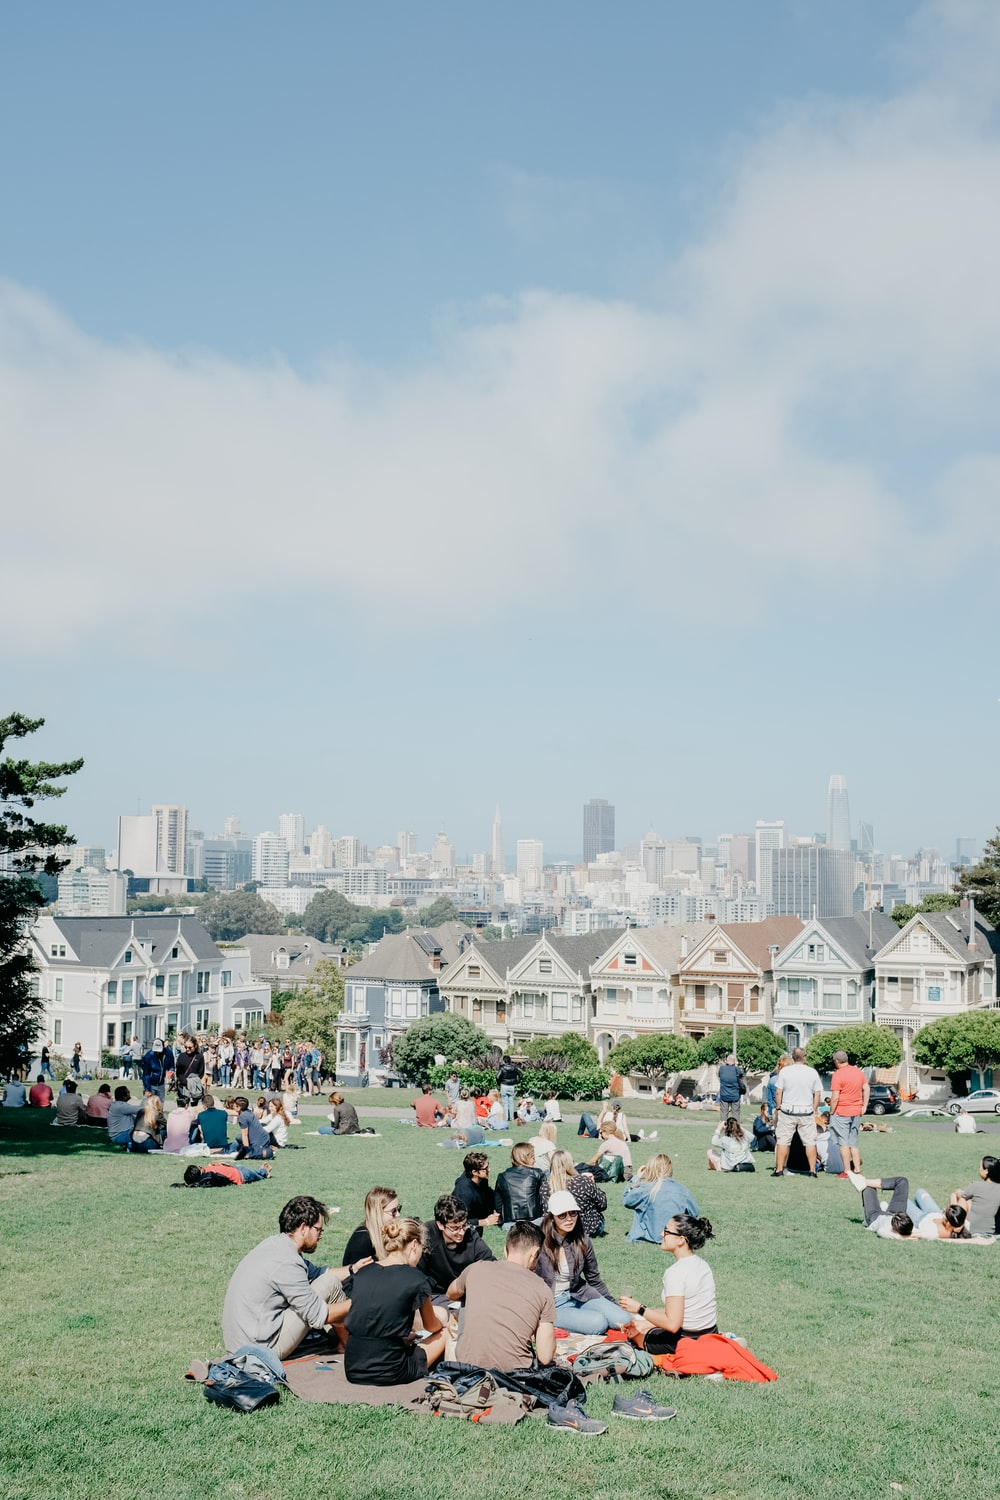 people sitting on grass field during daytime